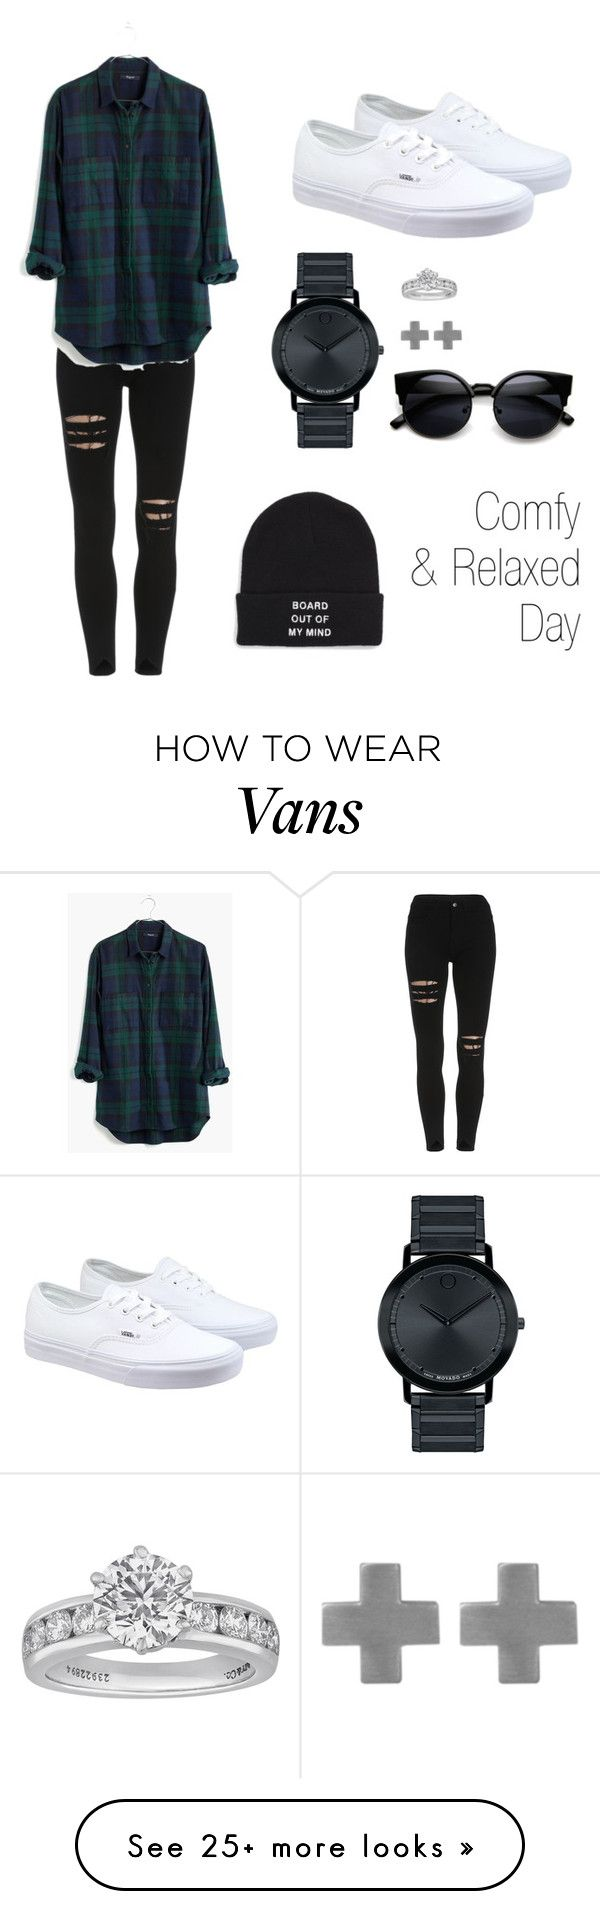 """""""Comfy and relaxed"""" by jxl048 on Polyvore featuring Madewell, Vans, Movado, Tiffany & Co. and Amberly Cross"""